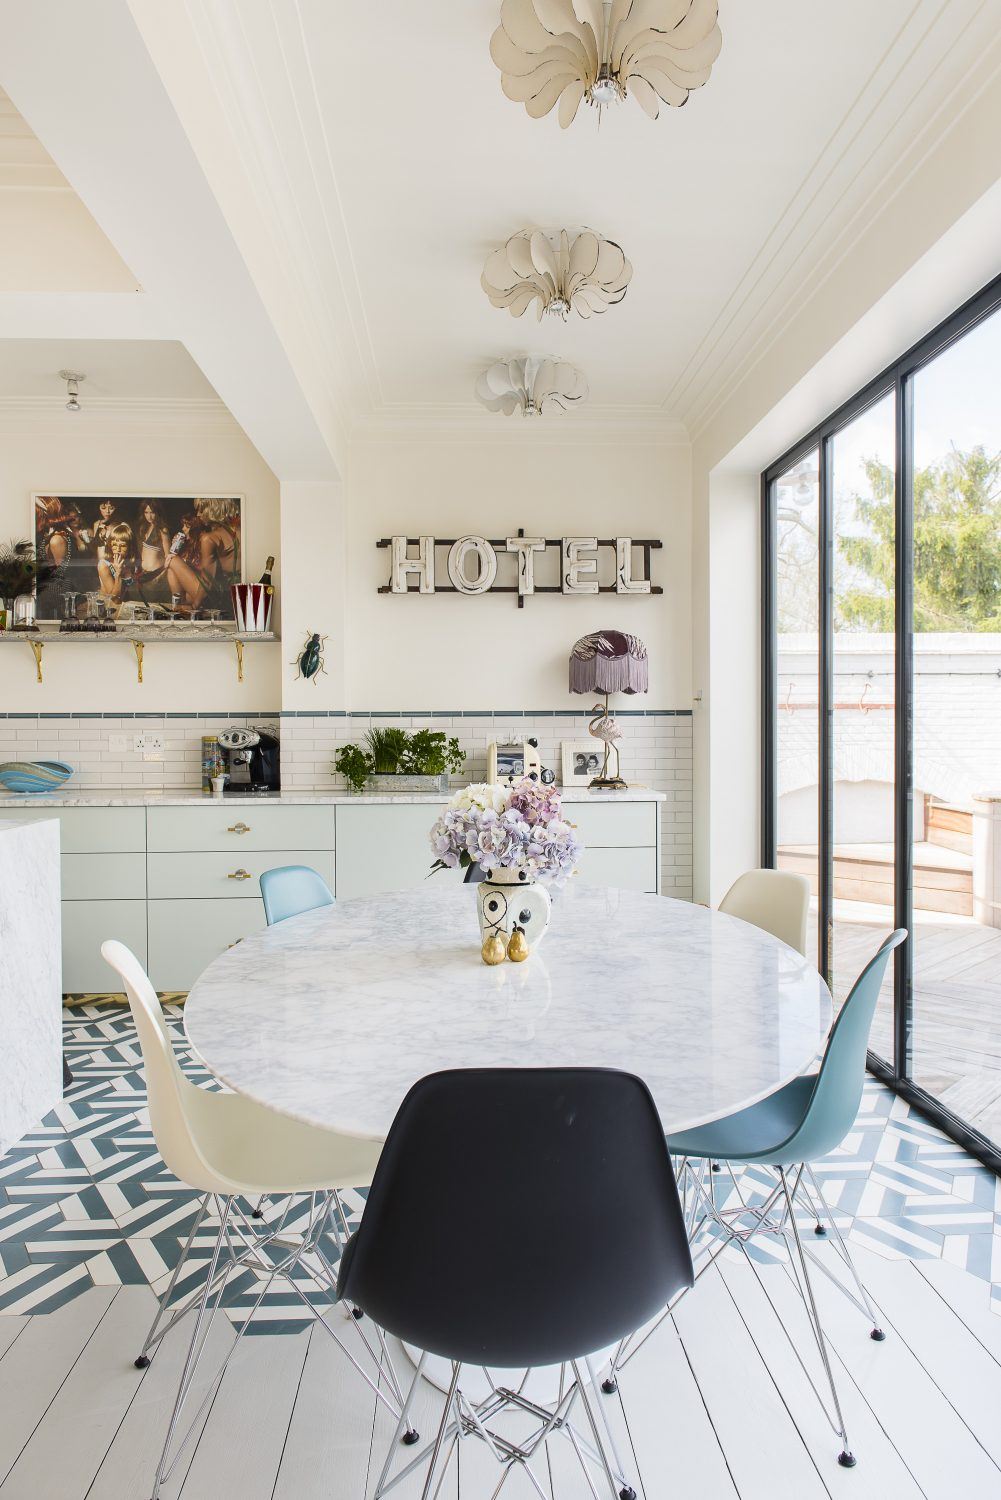 Samantha and Dougie's first task was to renovate the kitchen to create an airy open plan family space that maximised the outdoor view